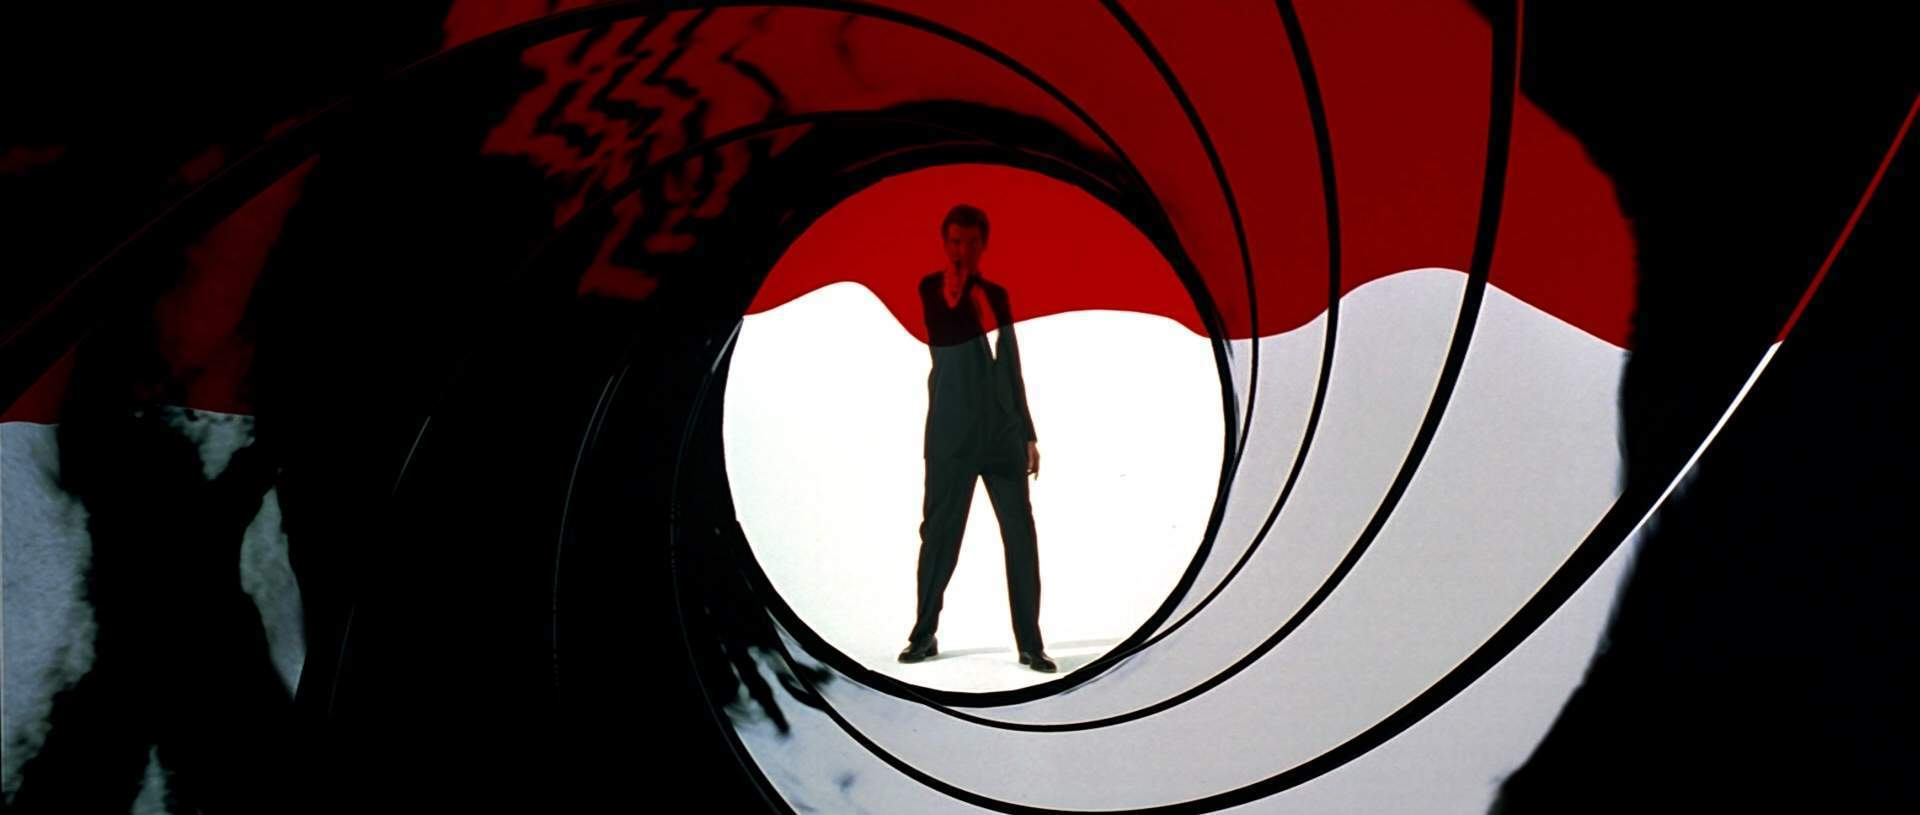 The heart of James Bond has always been in the theme song